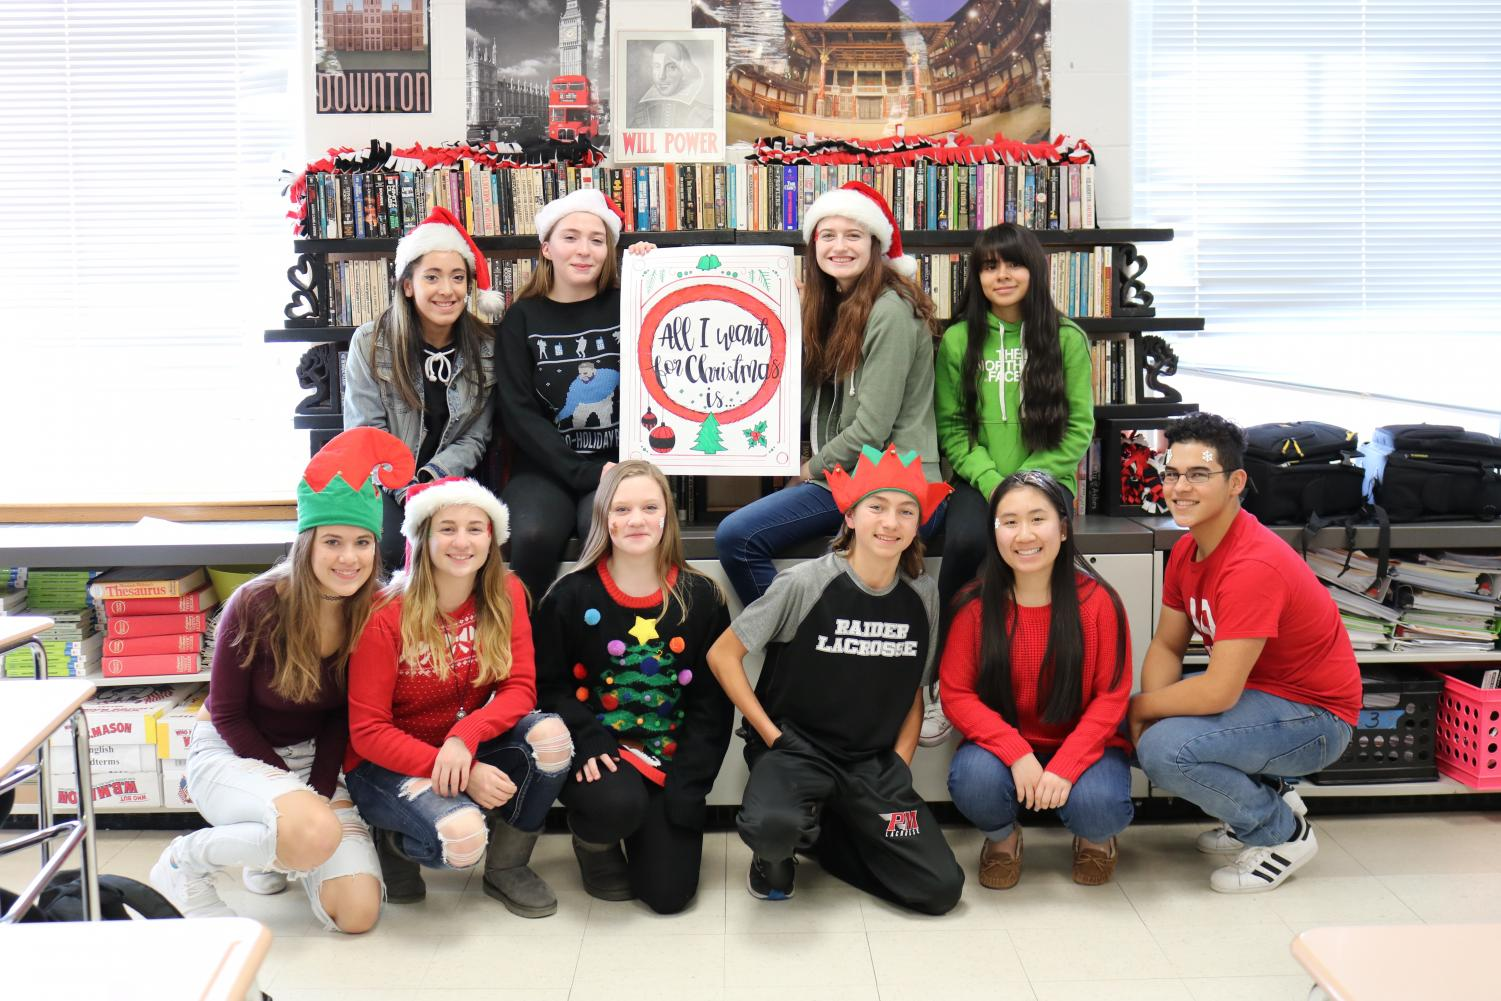 Mrs. Mckeough's AP Language students wrote letters to Santa (using persuasive language to convince him to get them what they want for Christmas) and sent them in to Macy's